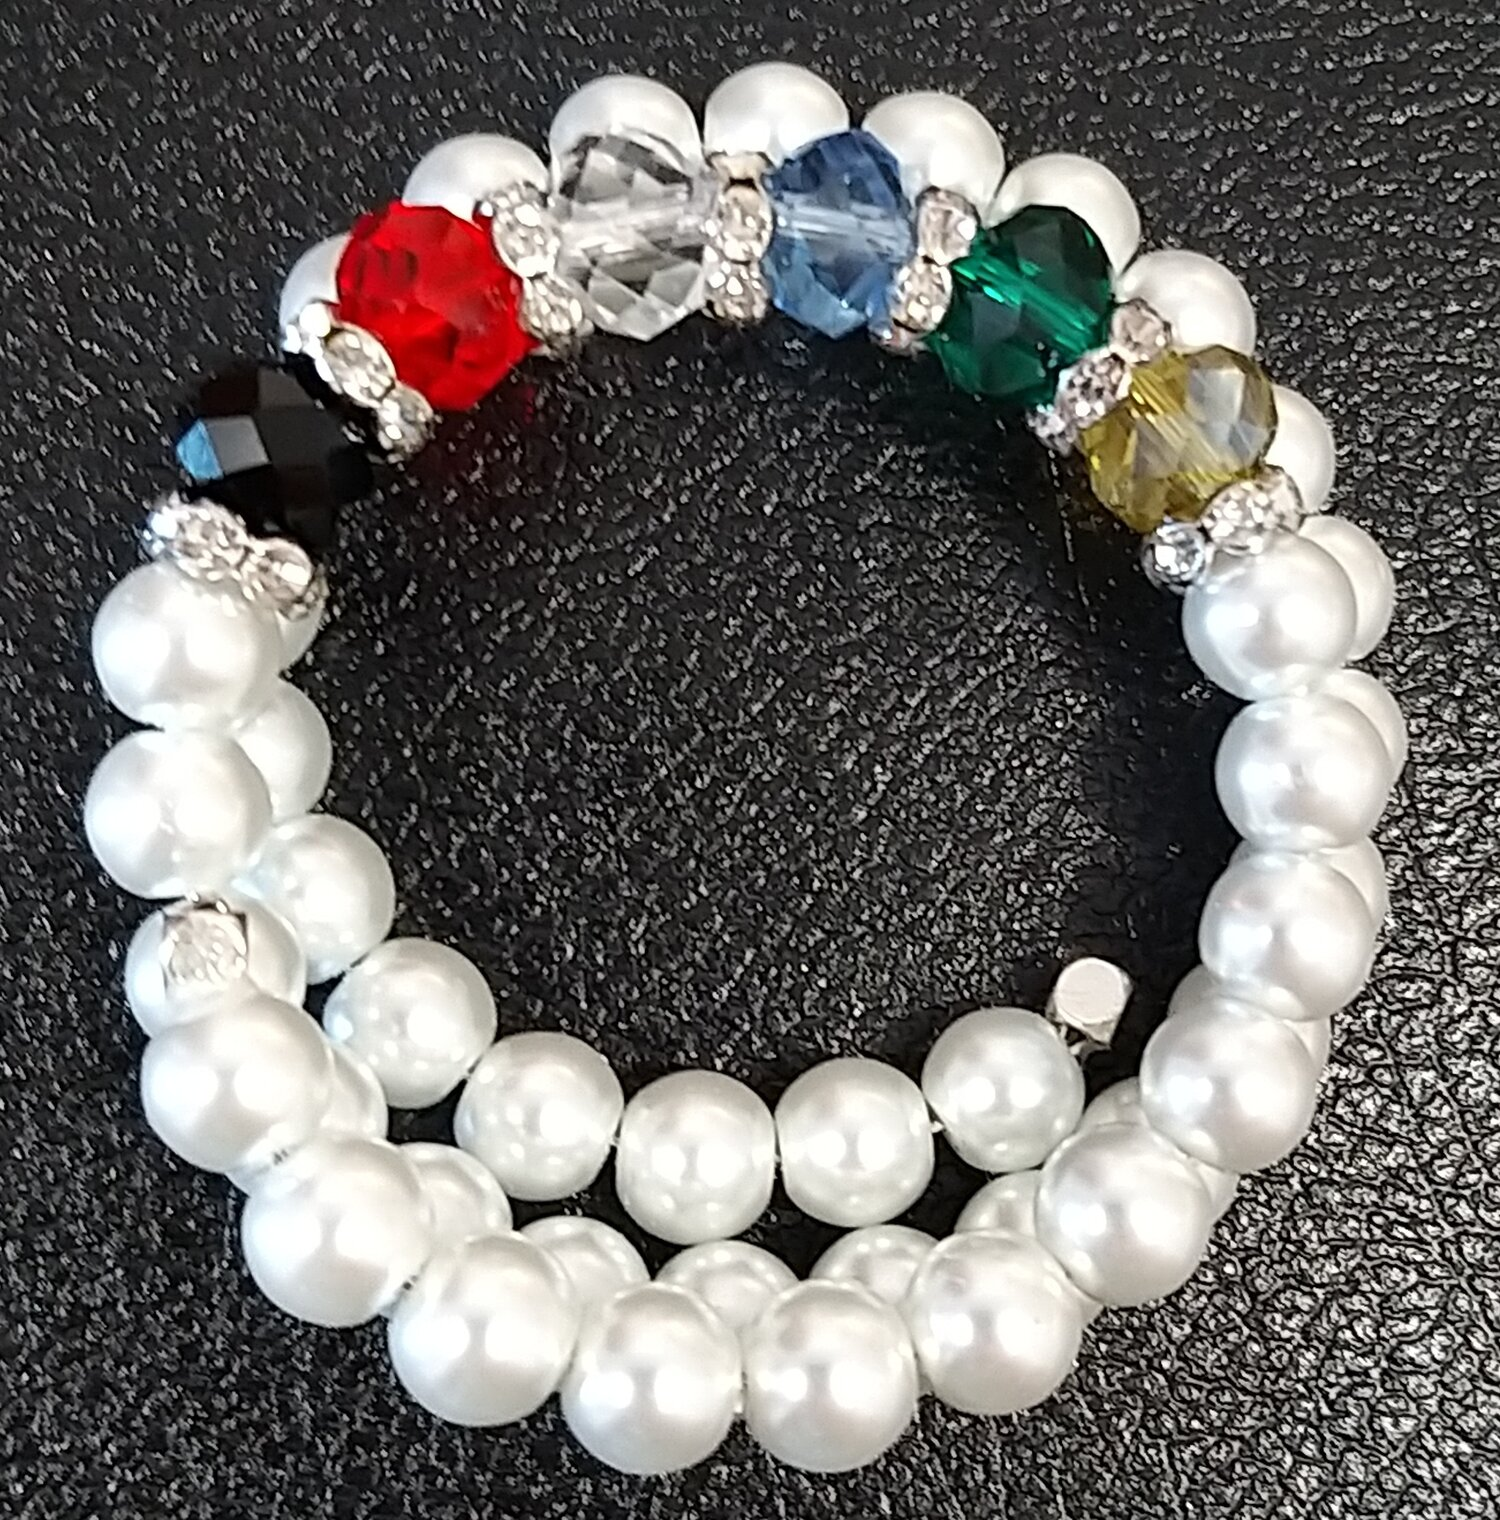 #AL-B 190913 - Pearl BRACELET_Double  suggested $100 usd - Terms Available